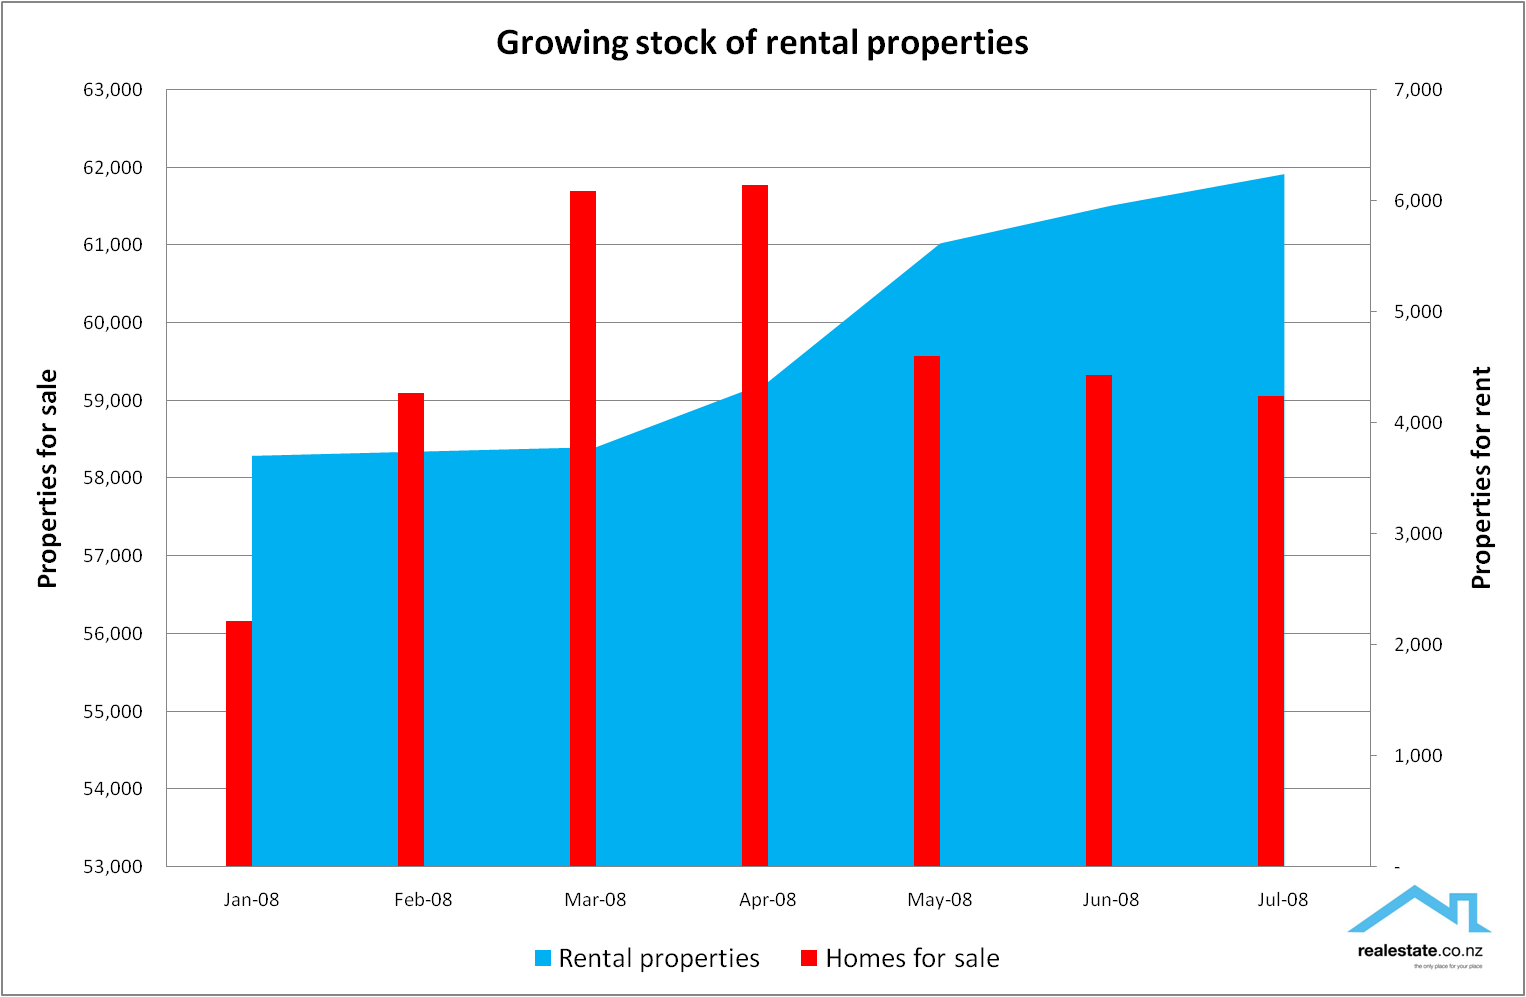 Rental listings vs property for sale on realestate.co.nz Jul 08